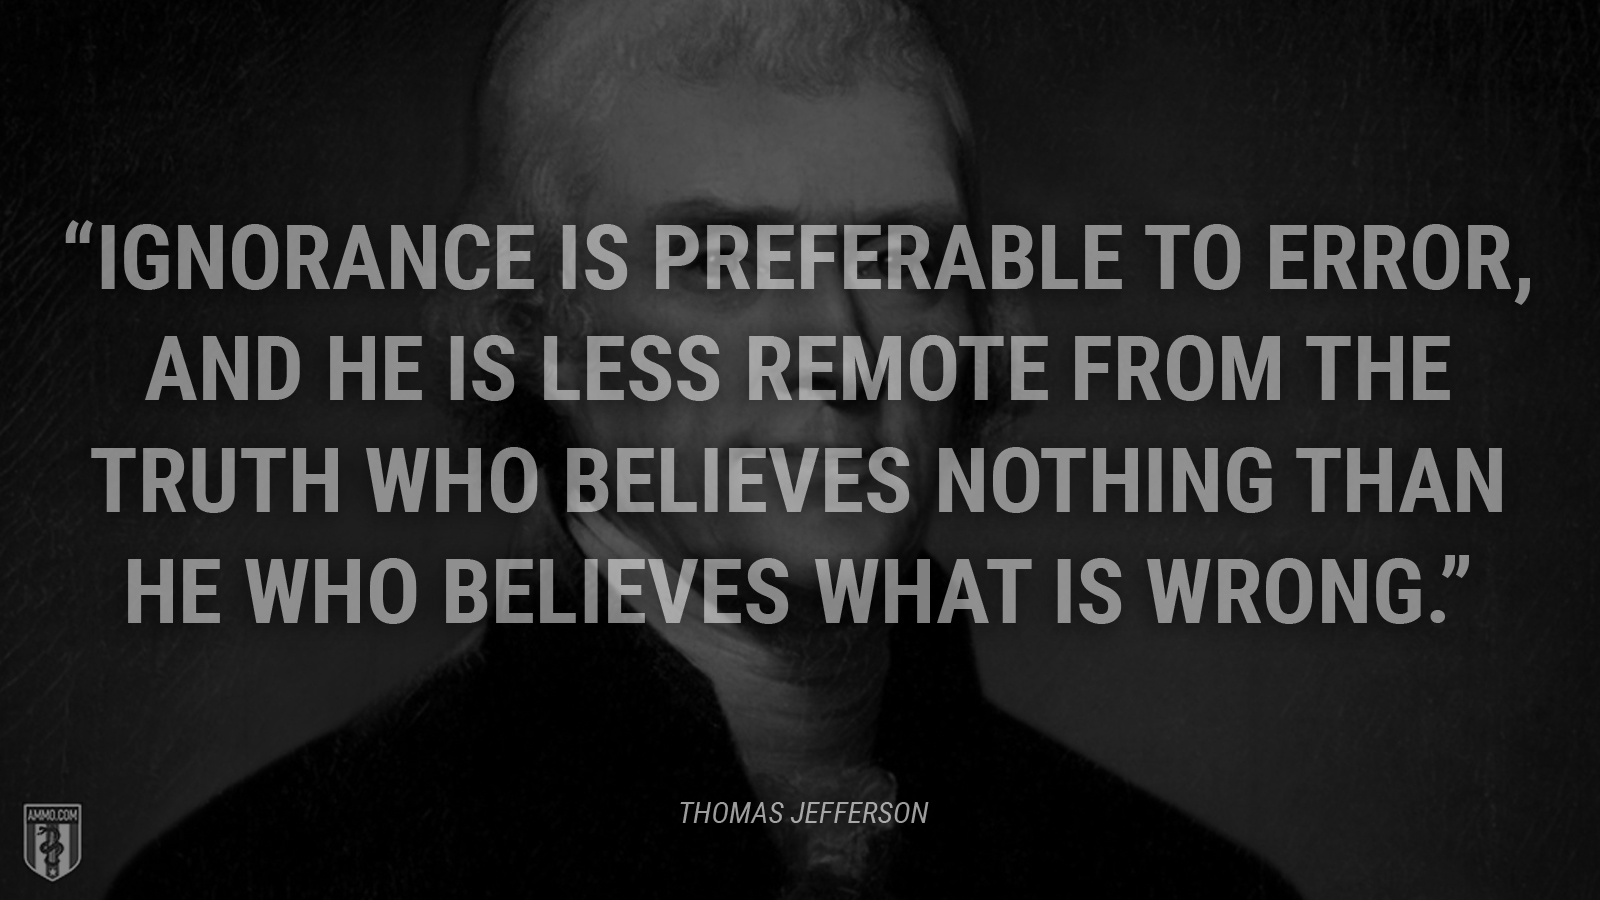 """Ignorance is preferable to error, and he is less remote from the truth who believes nothing than he who believes what is wrong."" - Thomas Jefferson"